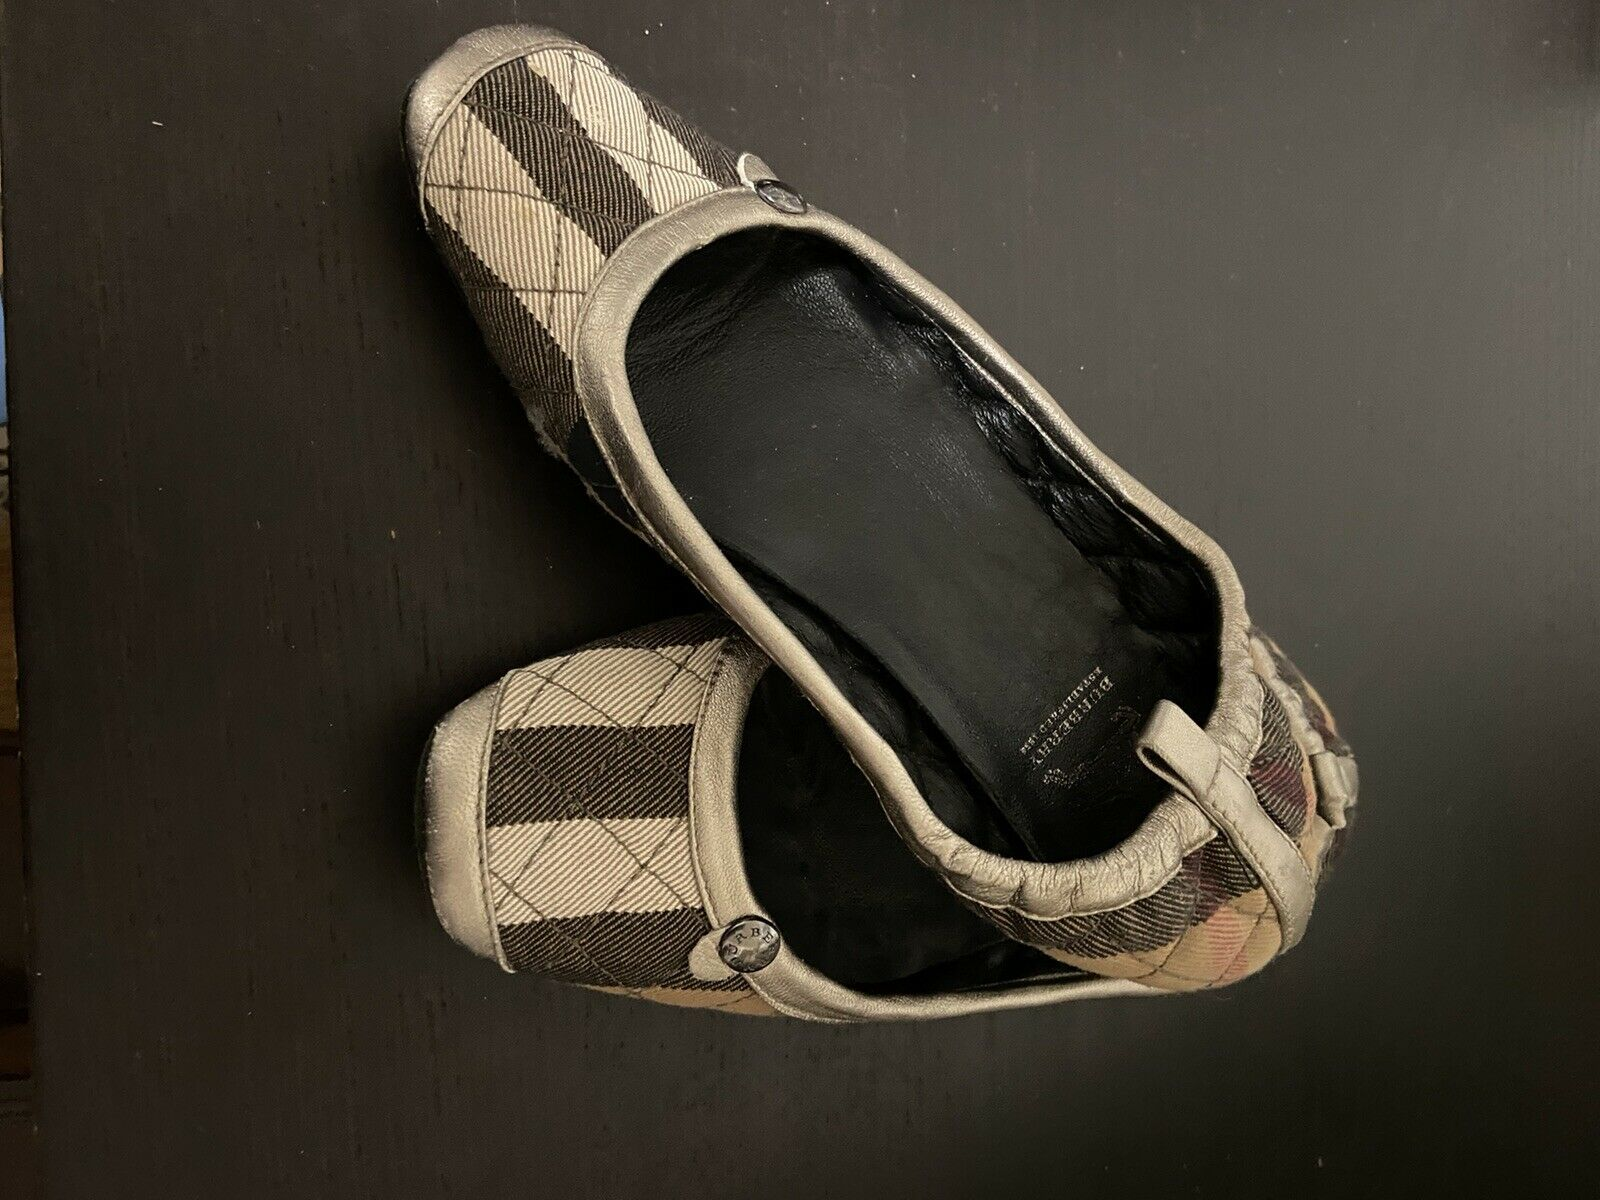 Burberry Women's Slippers SIZE 5 - image 3